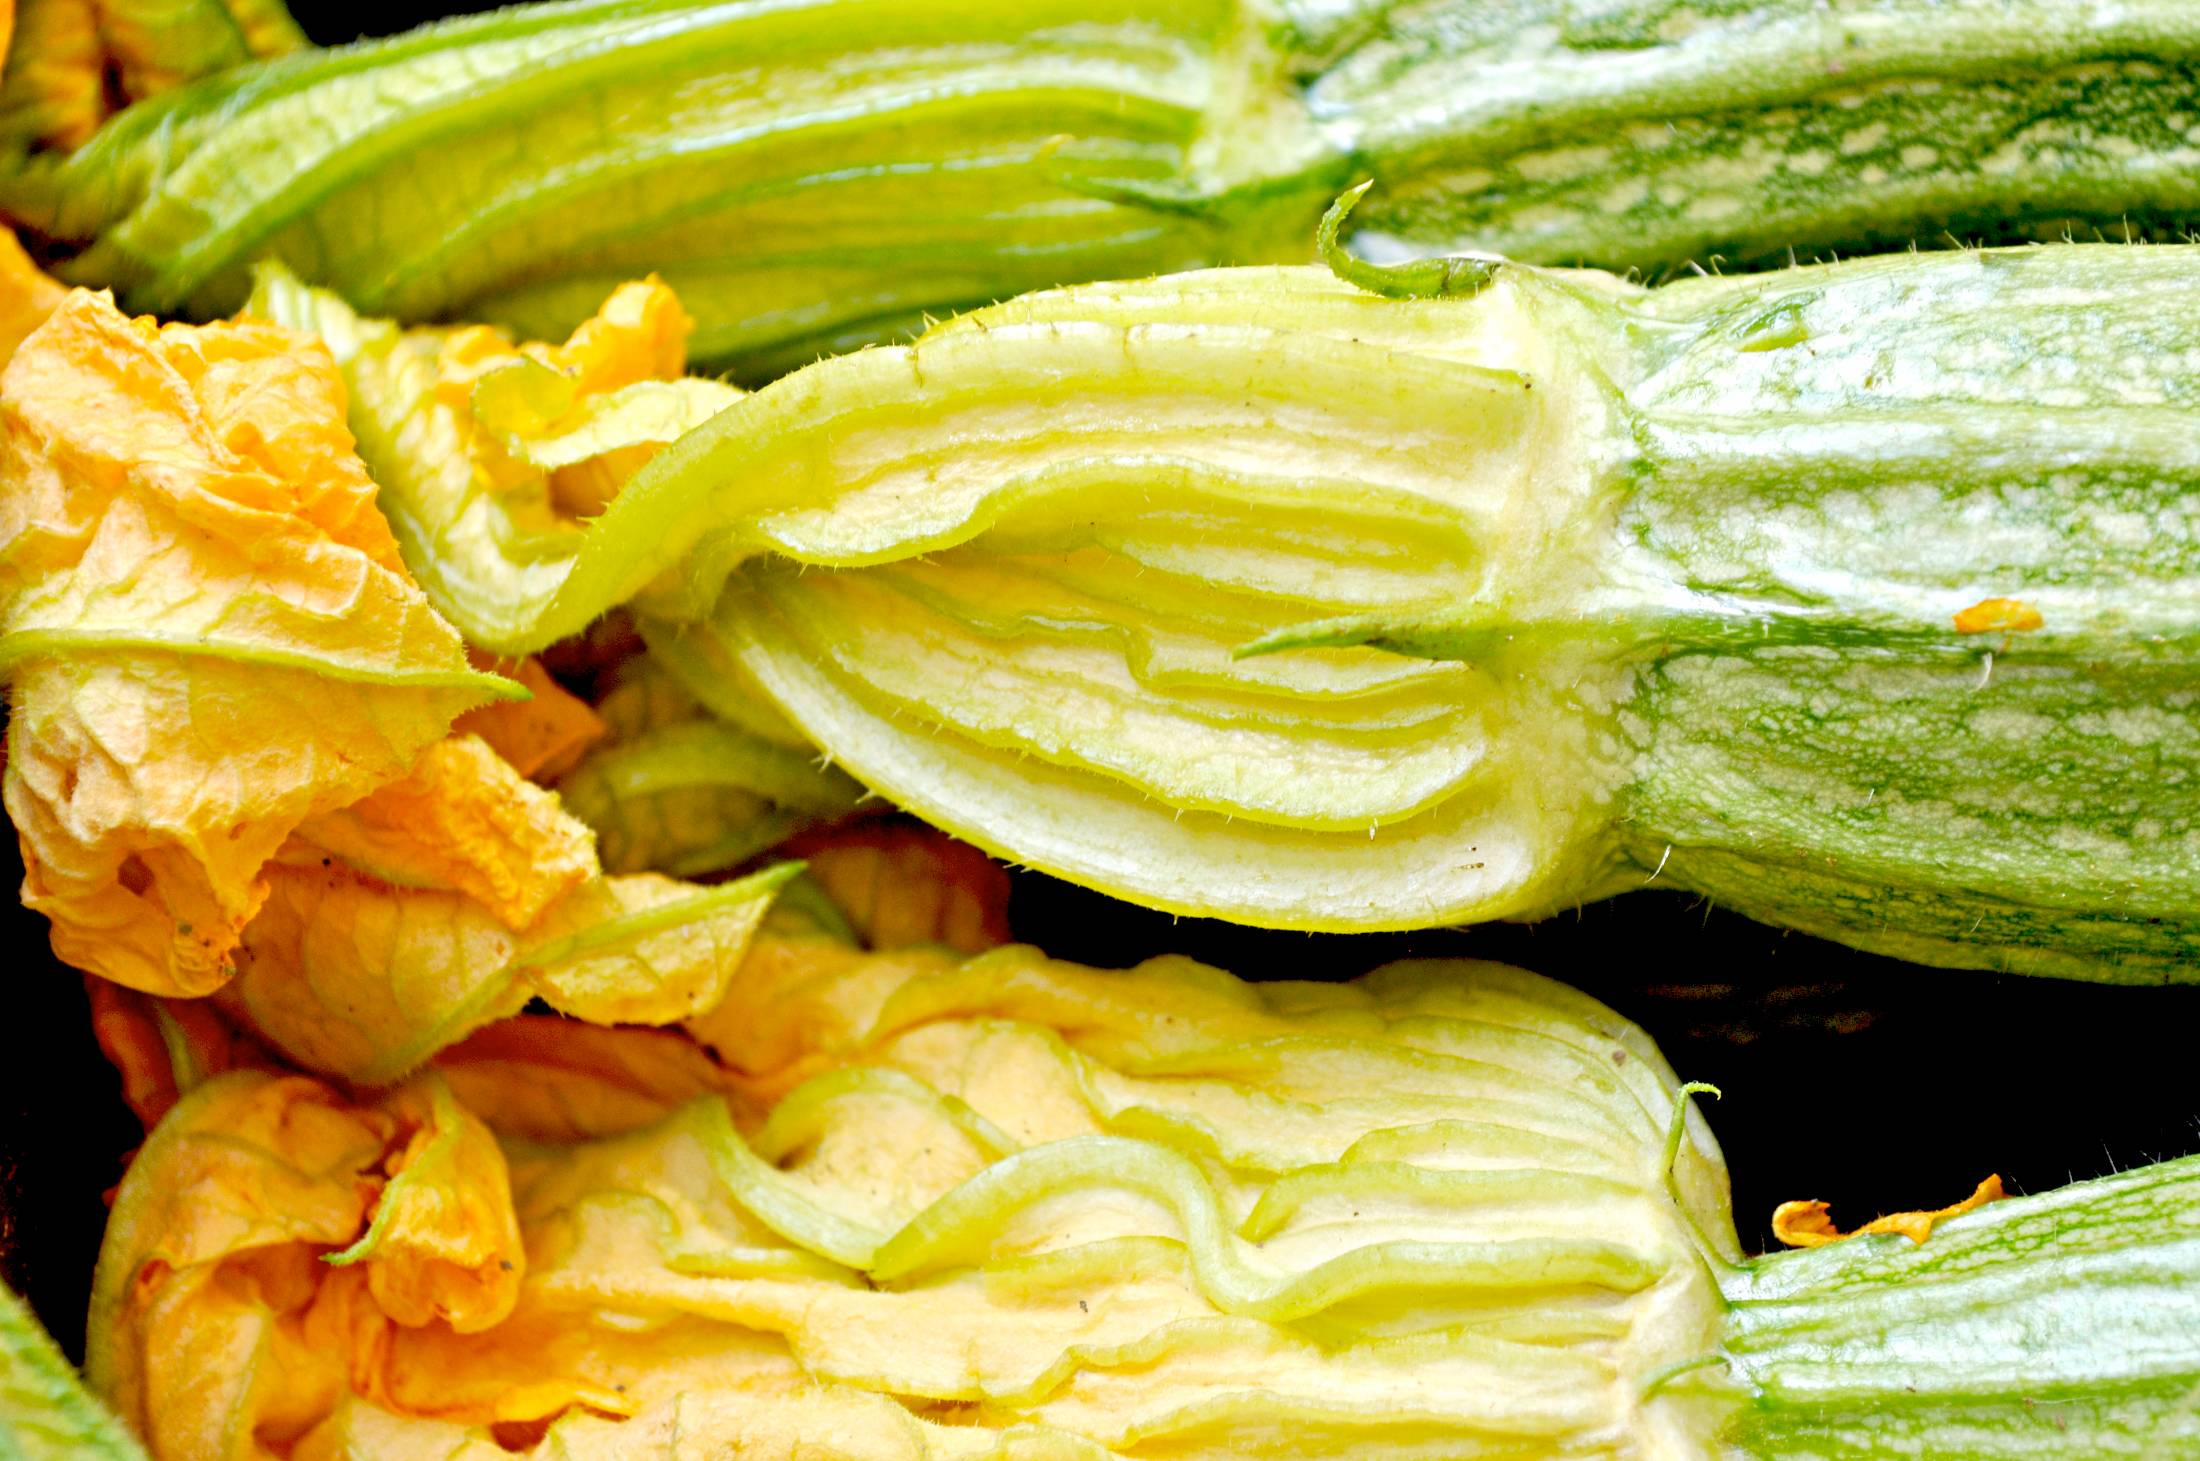 Zucchini flower fresh from the market